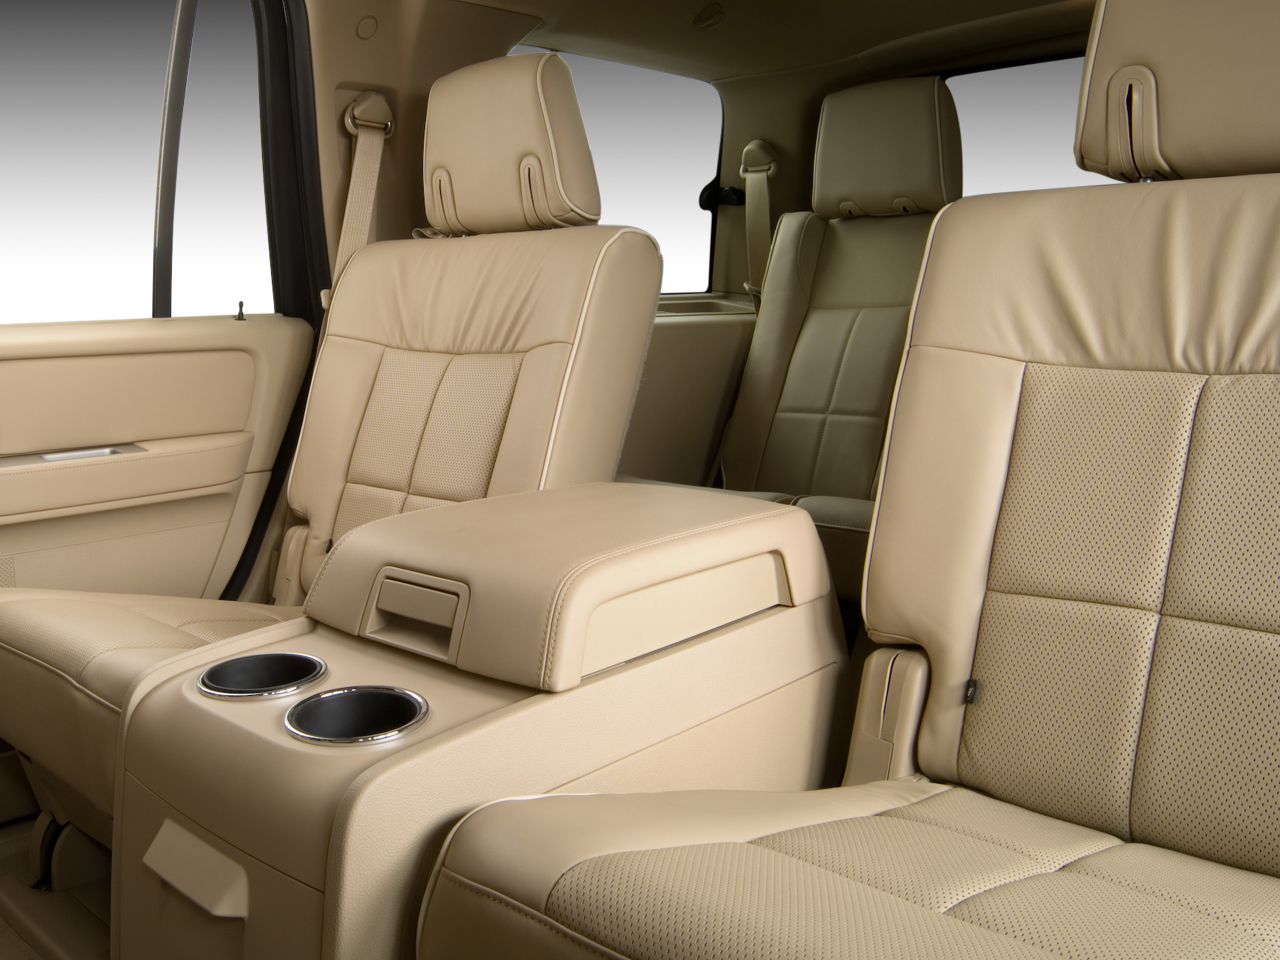 http://st.automobilemag.com/uploads/sites/10/2015/11/2007-lincoln-navigator-2wd-ultimate-suv-rear-seat.png